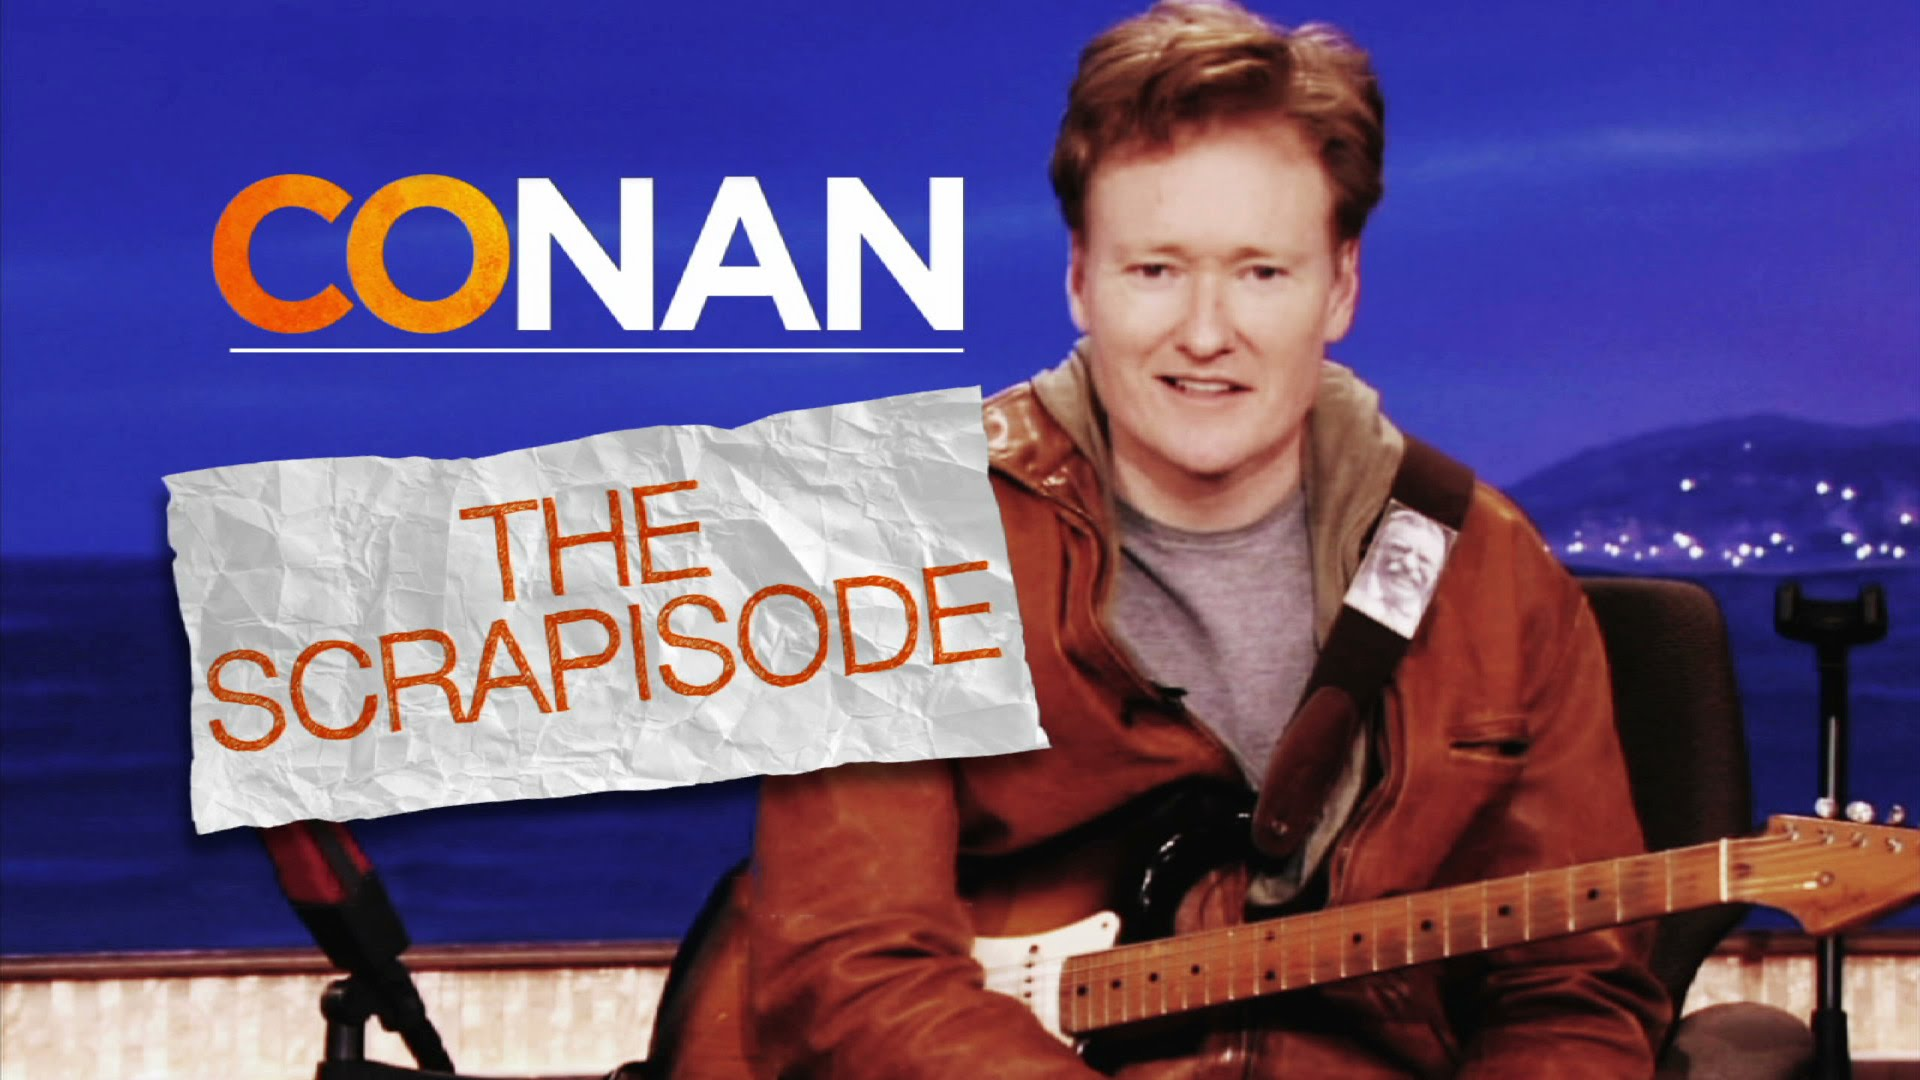 'Scrapisode', An Entire Episode of 'Conan' Created Using Outtakes of Show Rehearsal Clips